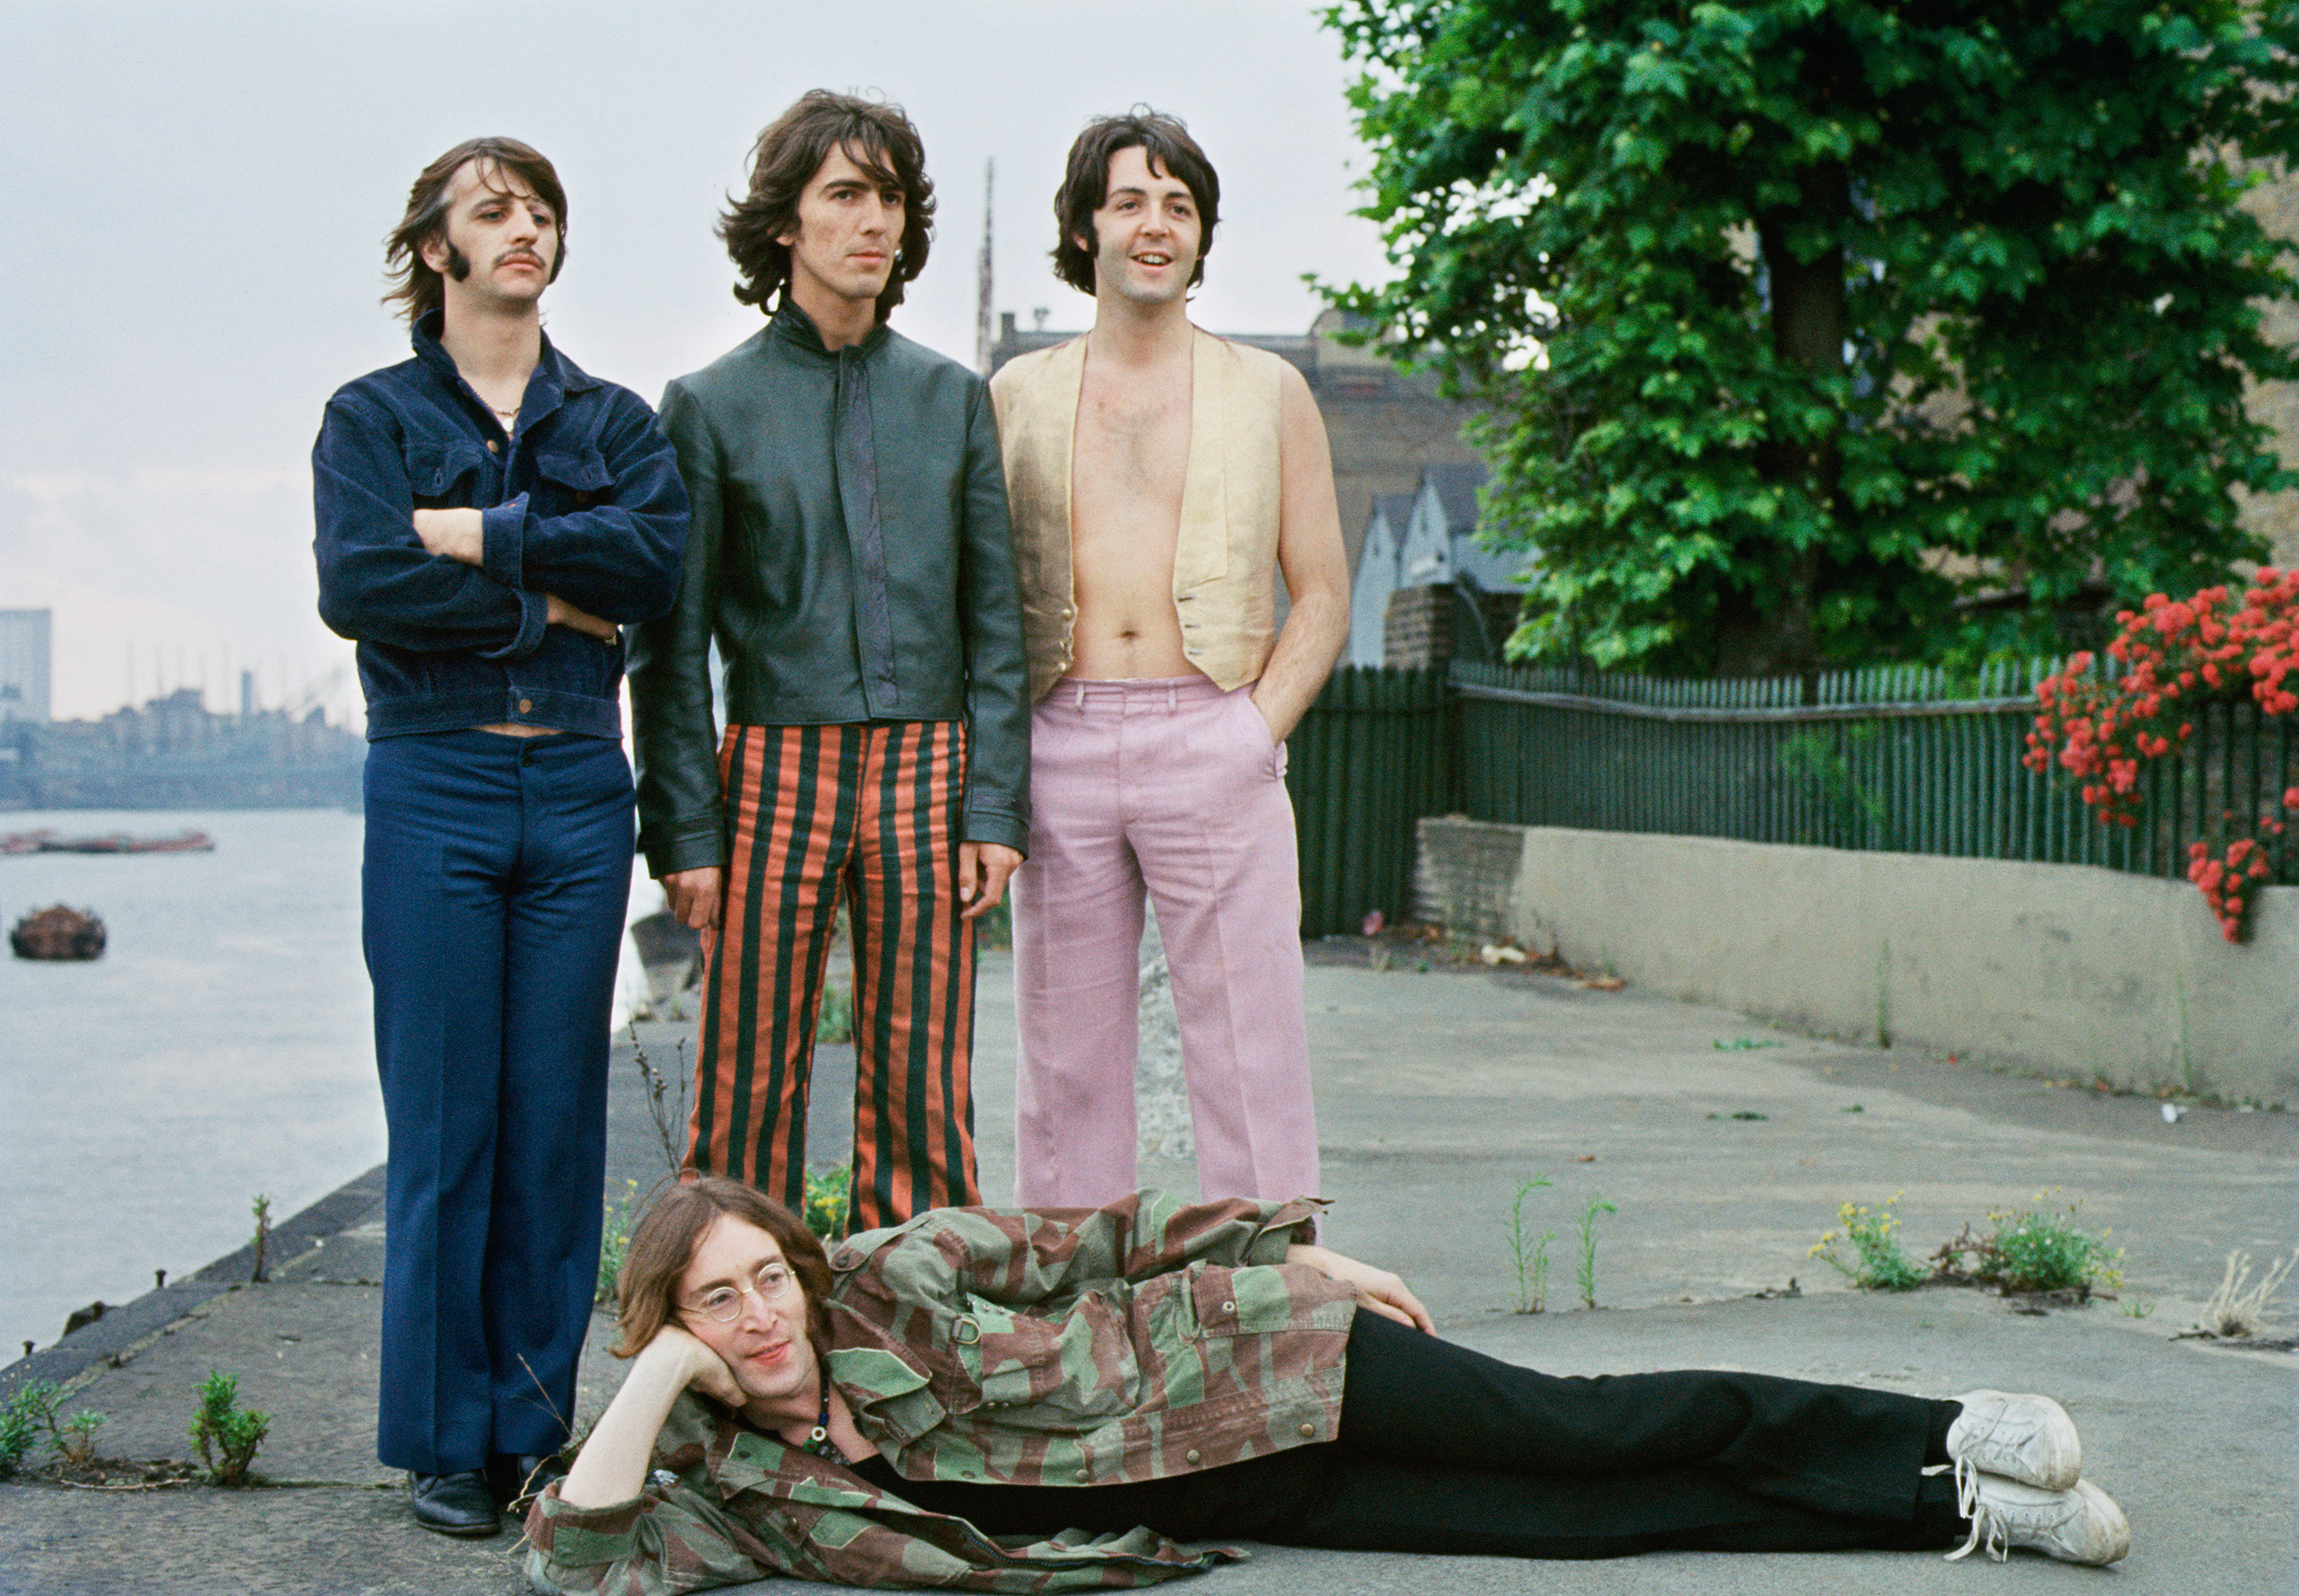 The Beatles from The Mad Day: Summer of '68.